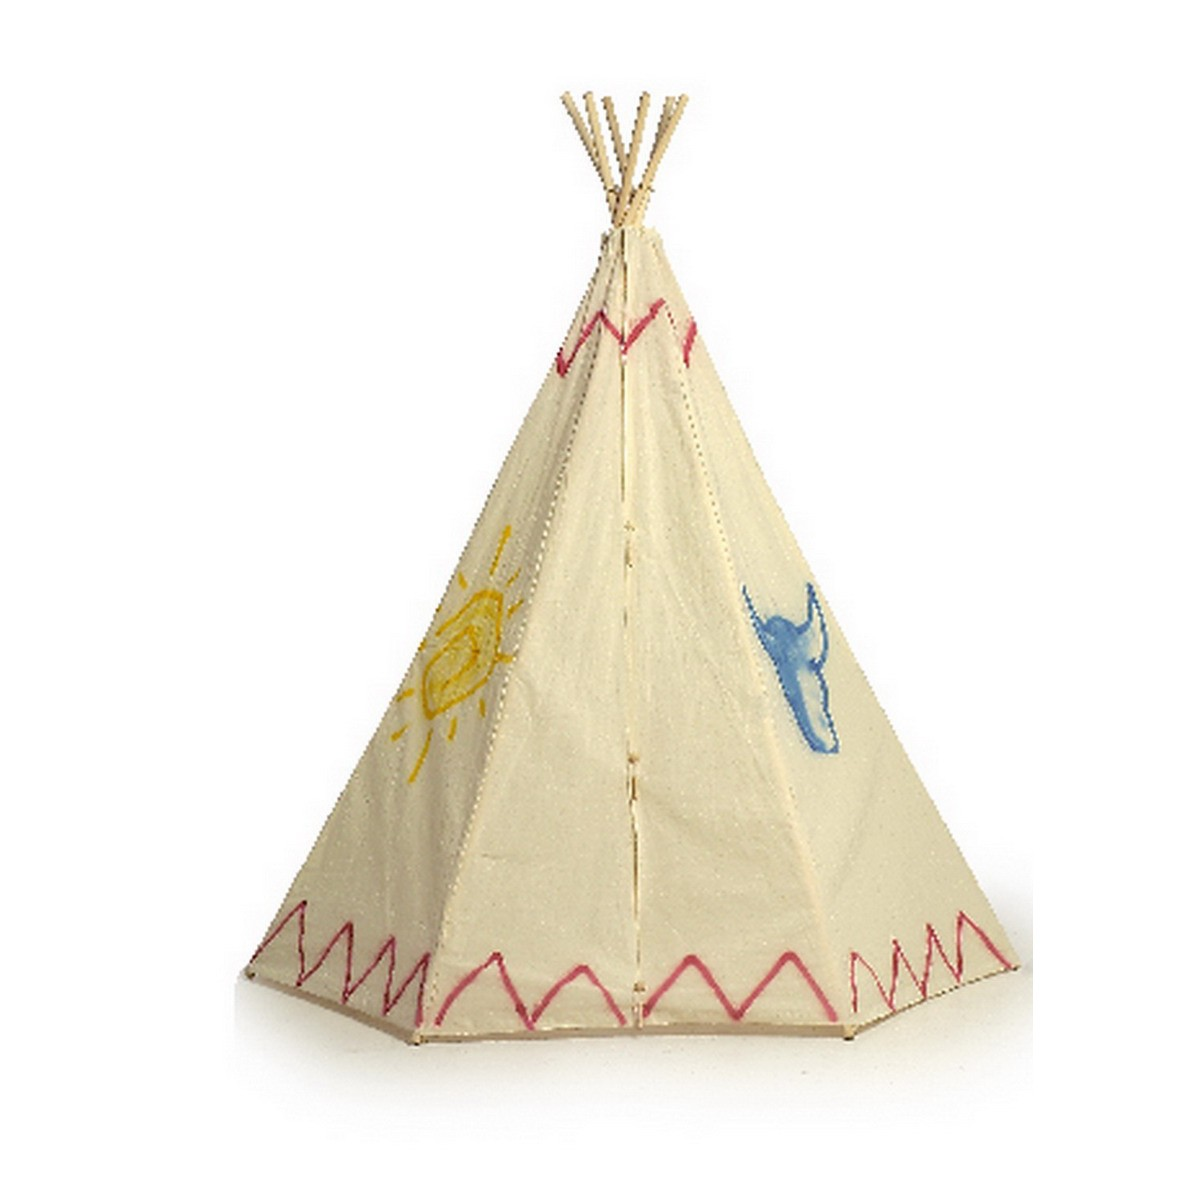 indianerzelt tipi mit bunten motiven von small foot g nstig bei mariposa toys kaufen. Black Bedroom Furniture Sets. Home Design Ideas